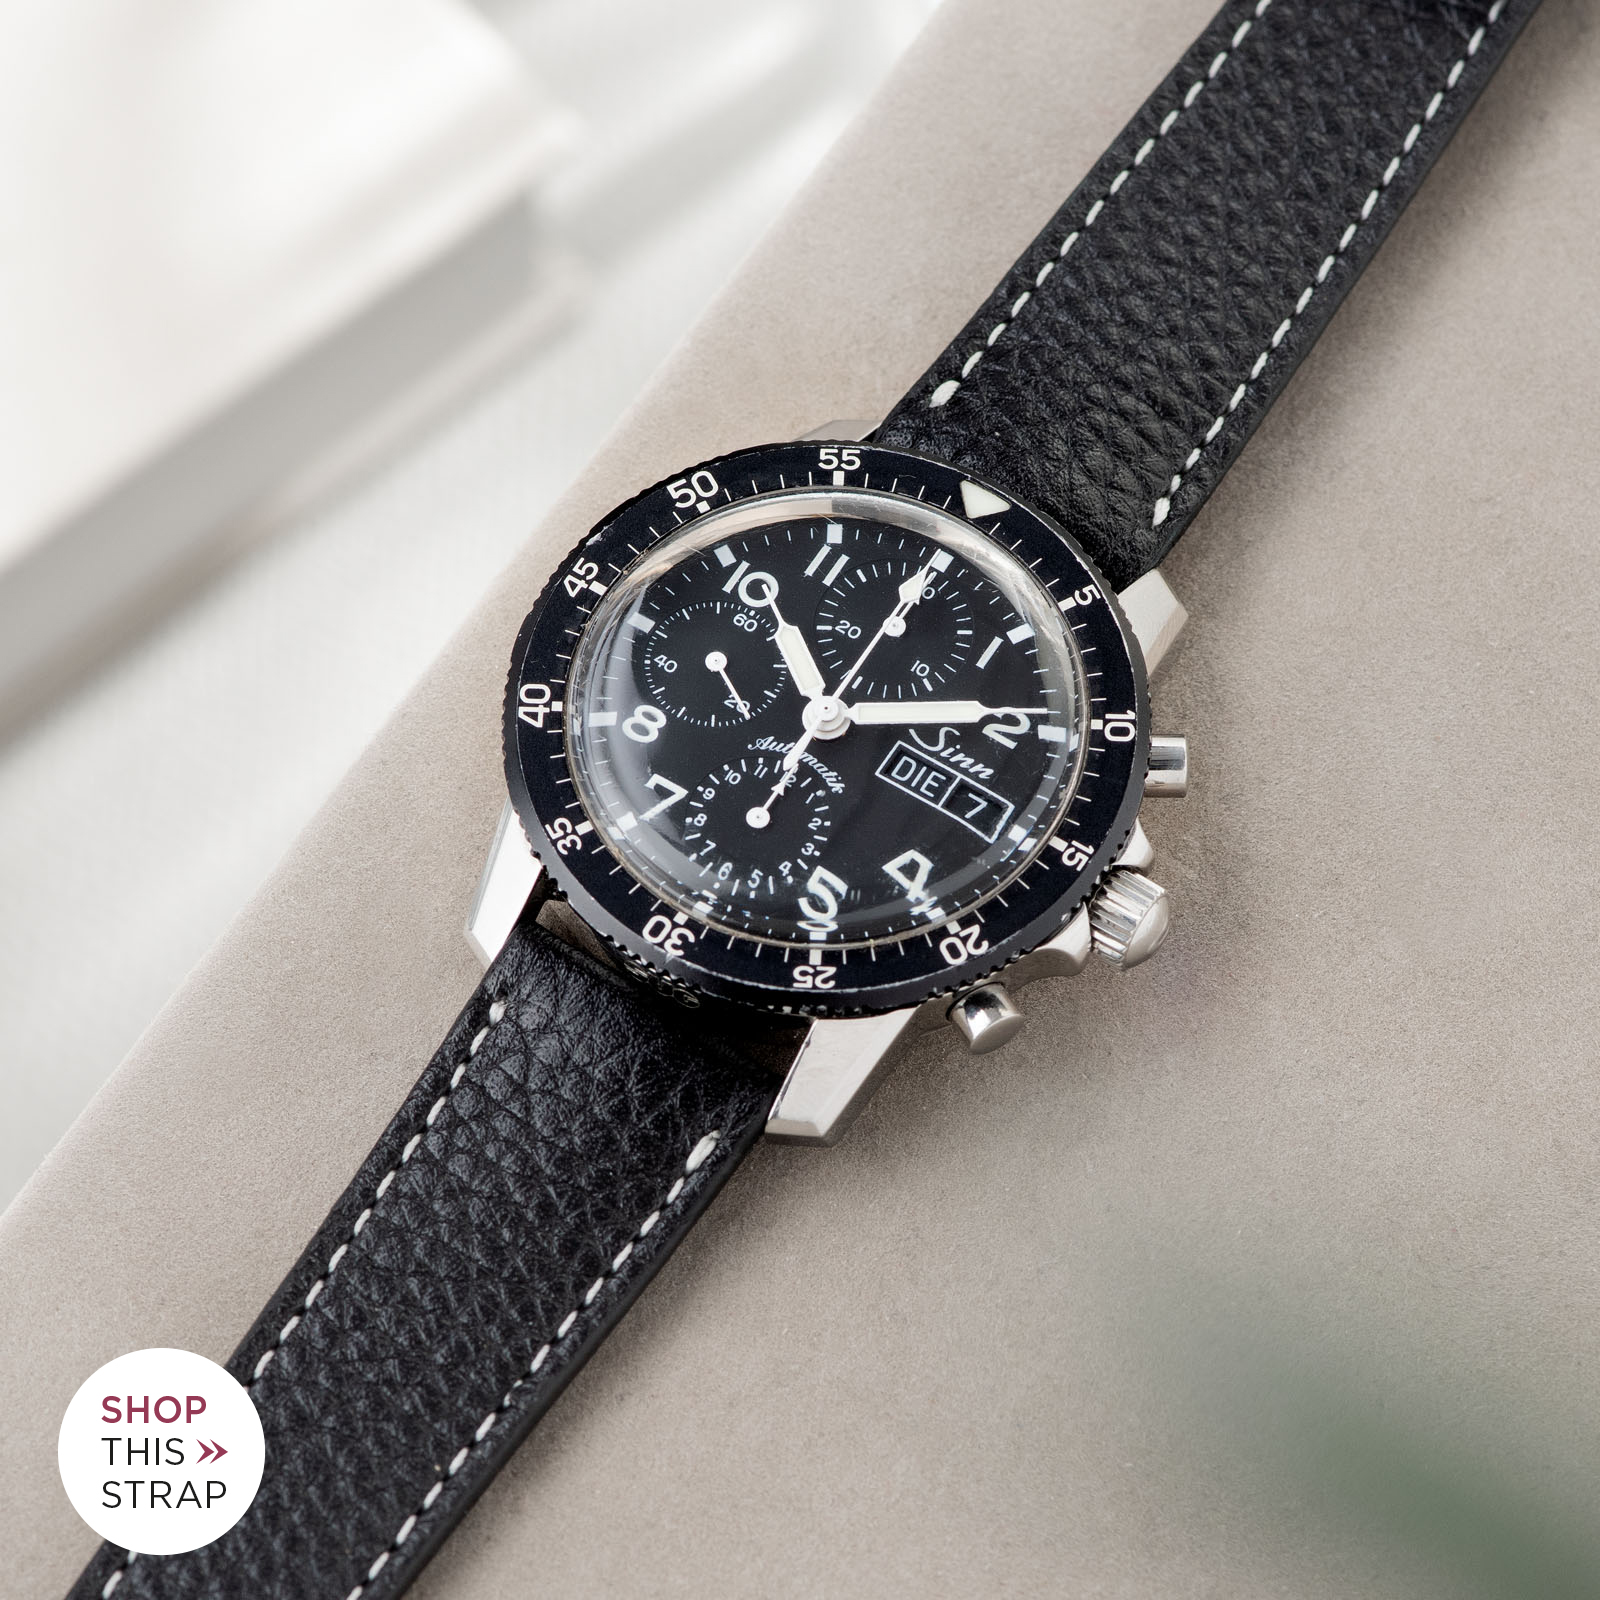 Bulang and Sons_Strap Guide_Sinn 103_Rich Black Cream Stitch Leather Watch Strap